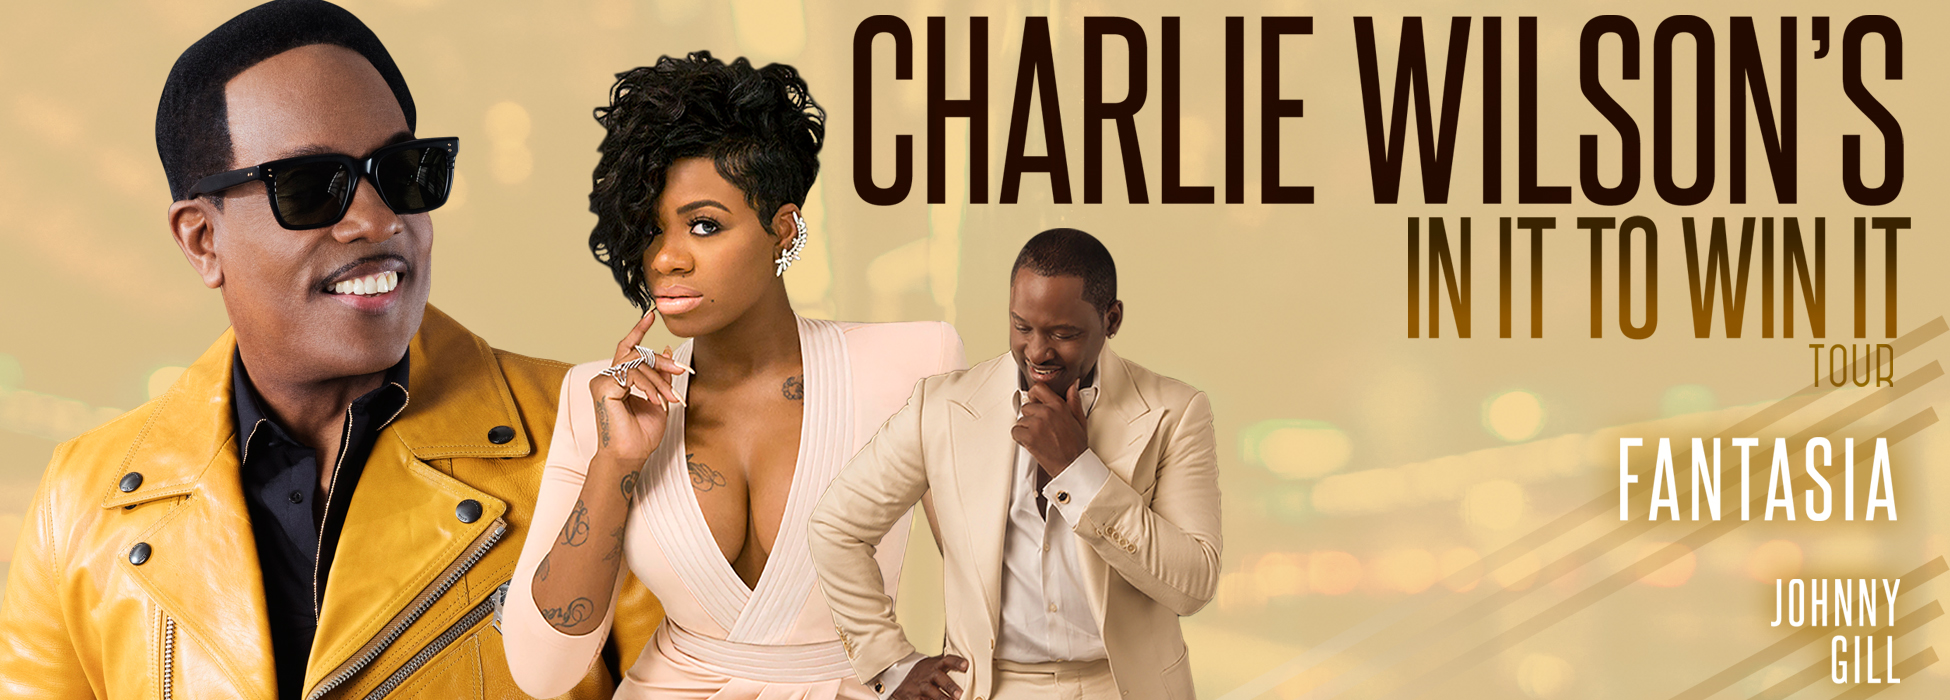 (March 2, 2017 – Los Angeles) – Charlie Wilson is definitely IN IT TO WIN  IT with both his current national arena tour and new hit album.